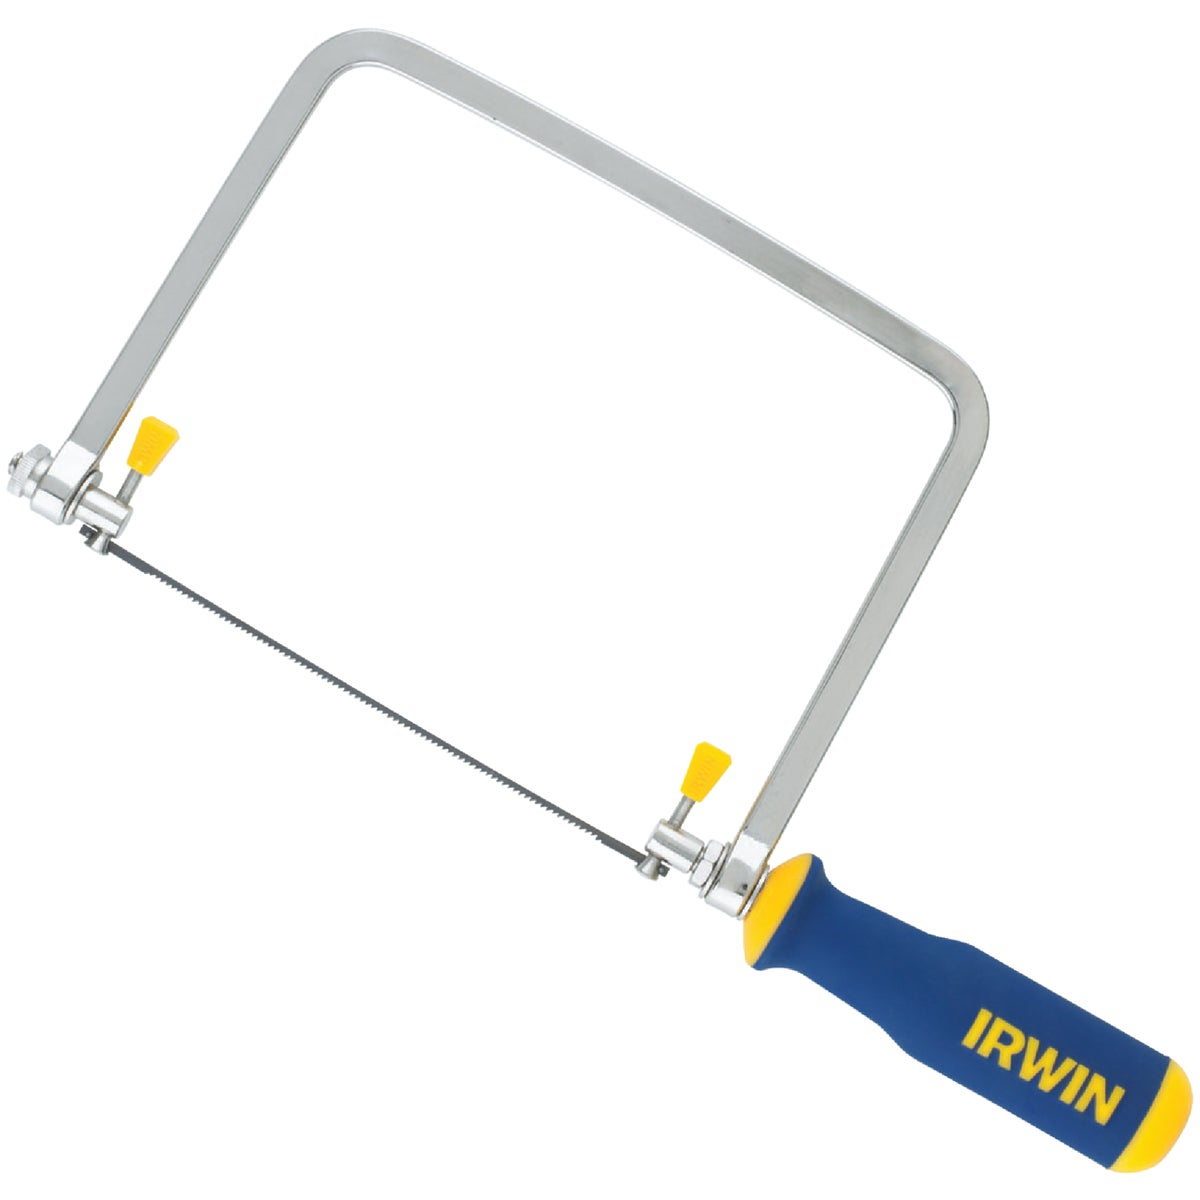 "6.5"" PROTOUCH COPING SAW - 2014400 by Irwin Industr Tool"